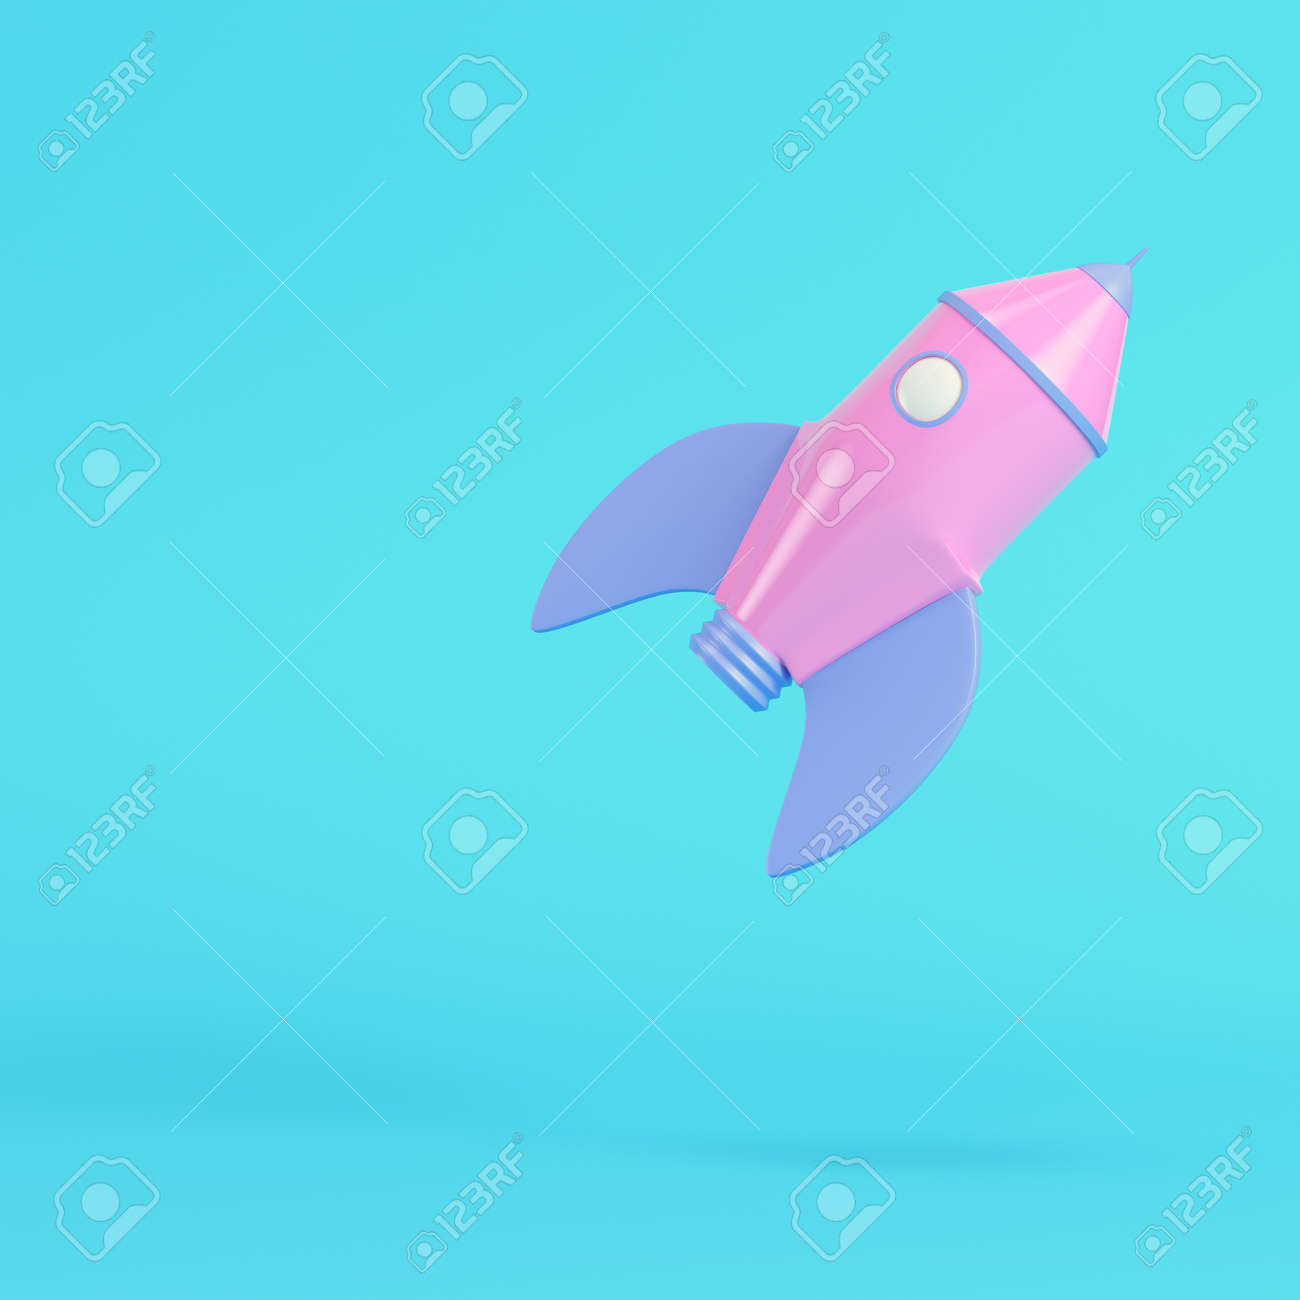 Pink cartoon styled rocket on bright blue background in pastel colors. Minimalism concept. 3d render - 172726649